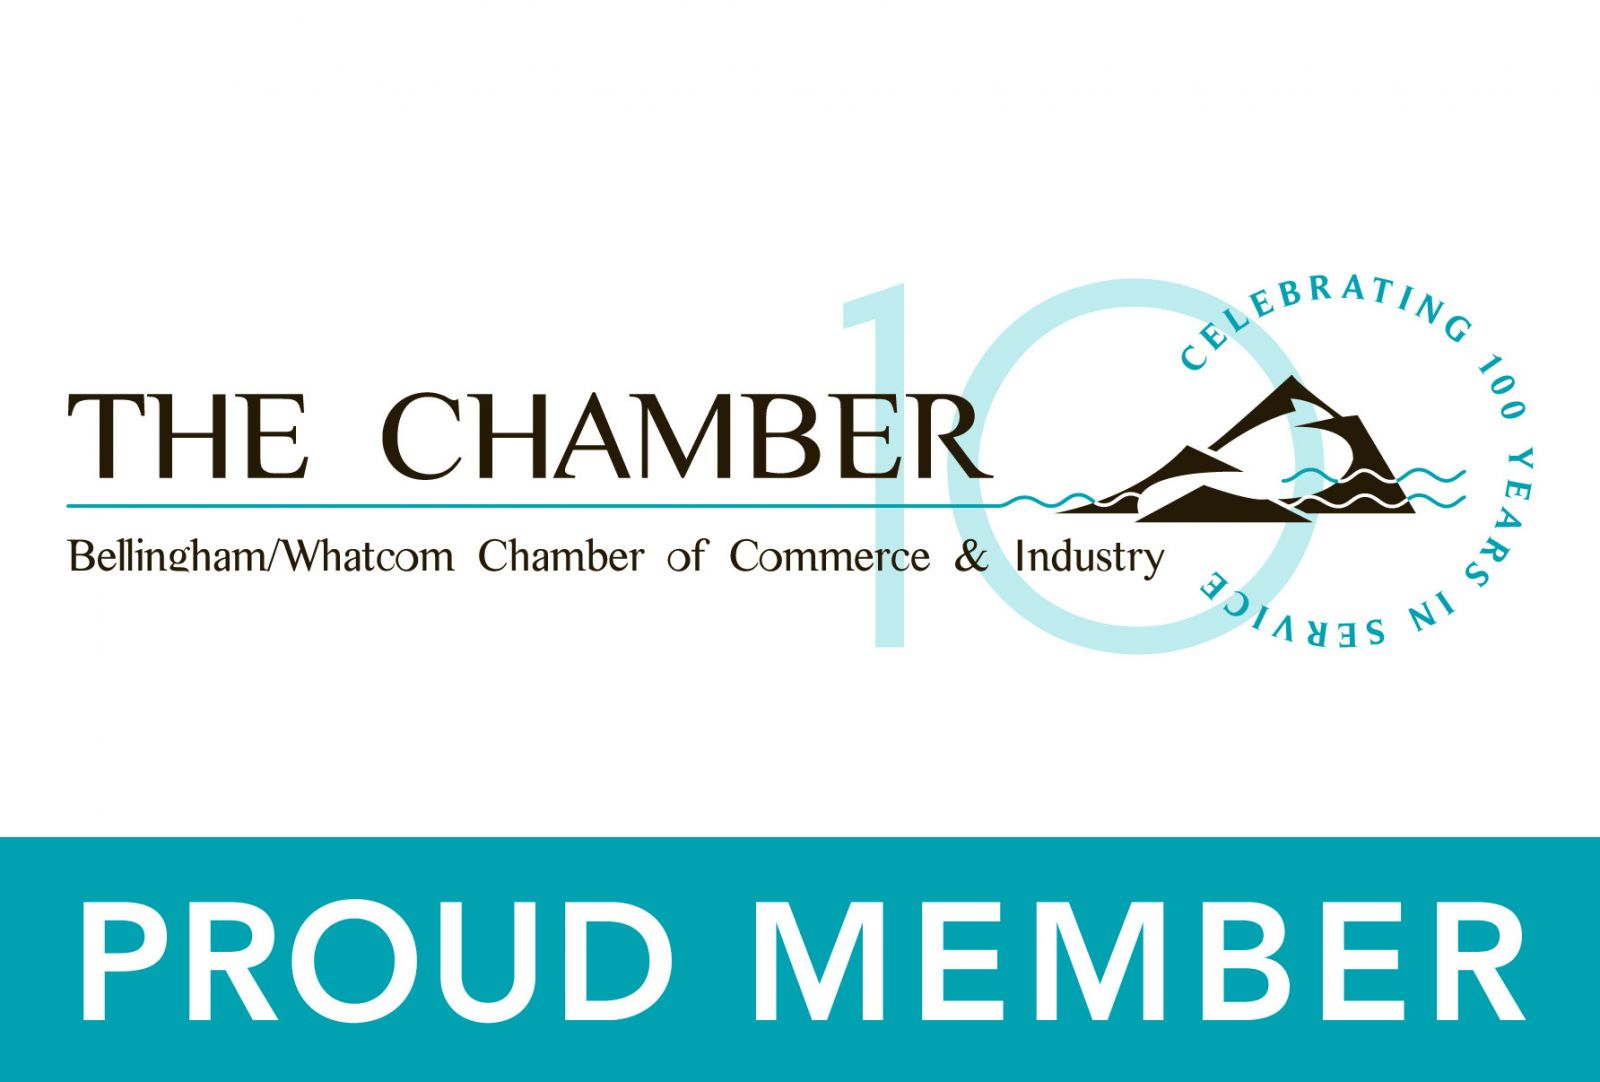 Chamber Of Commerce Member.jpg